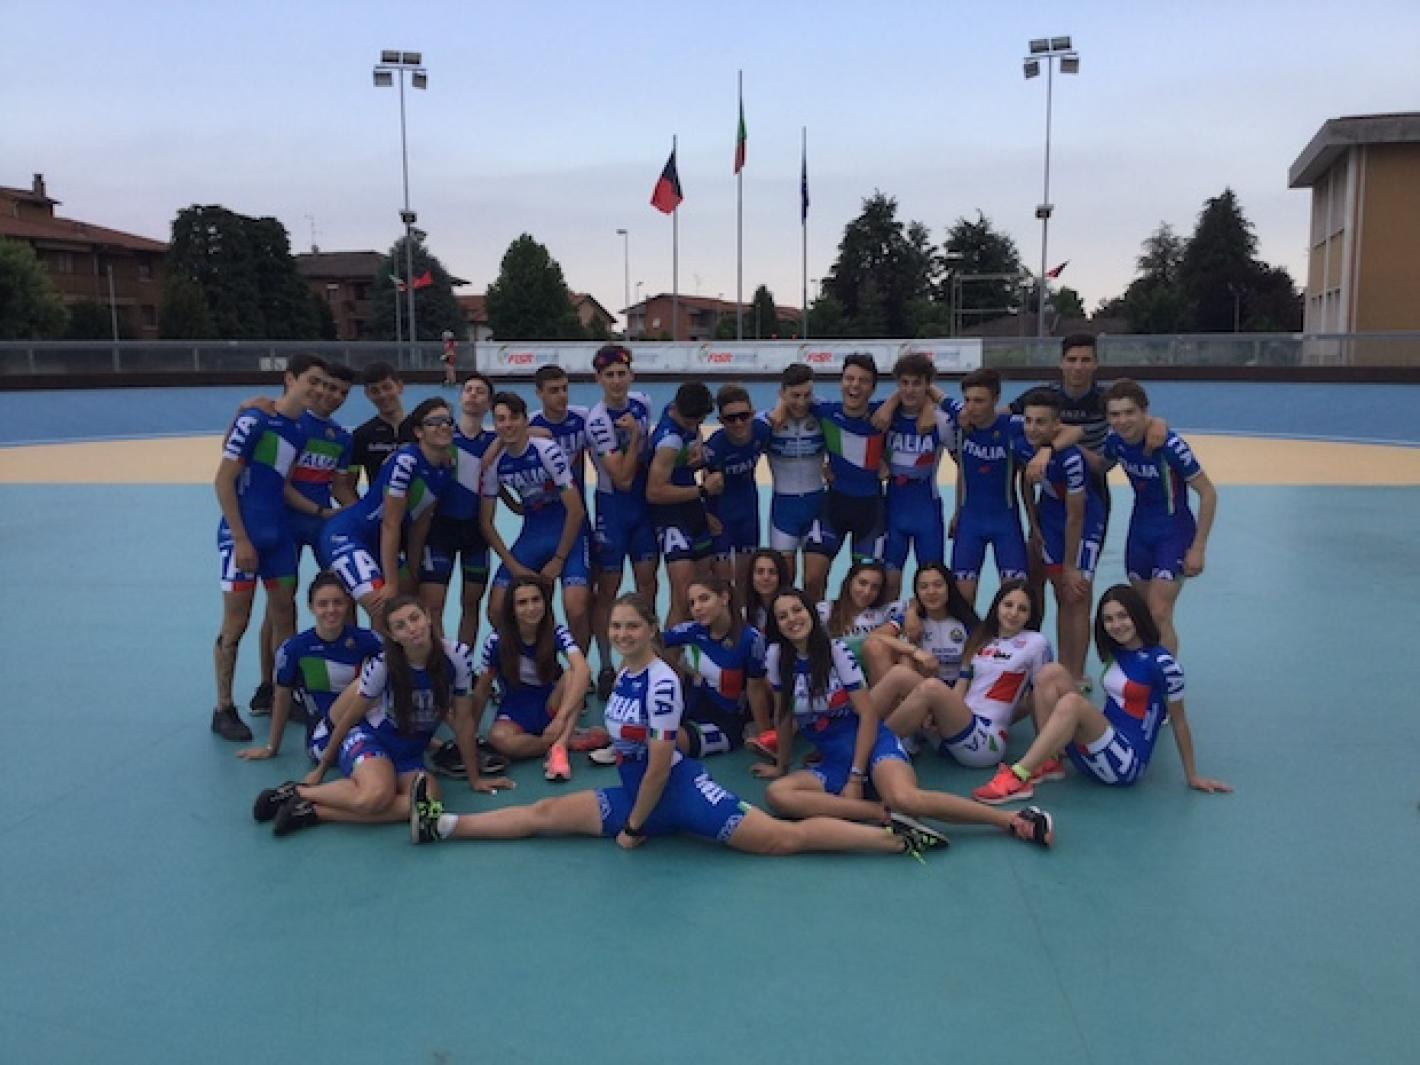 Nazionale-Italiana-inline-speed-skating-ReArtù-2018